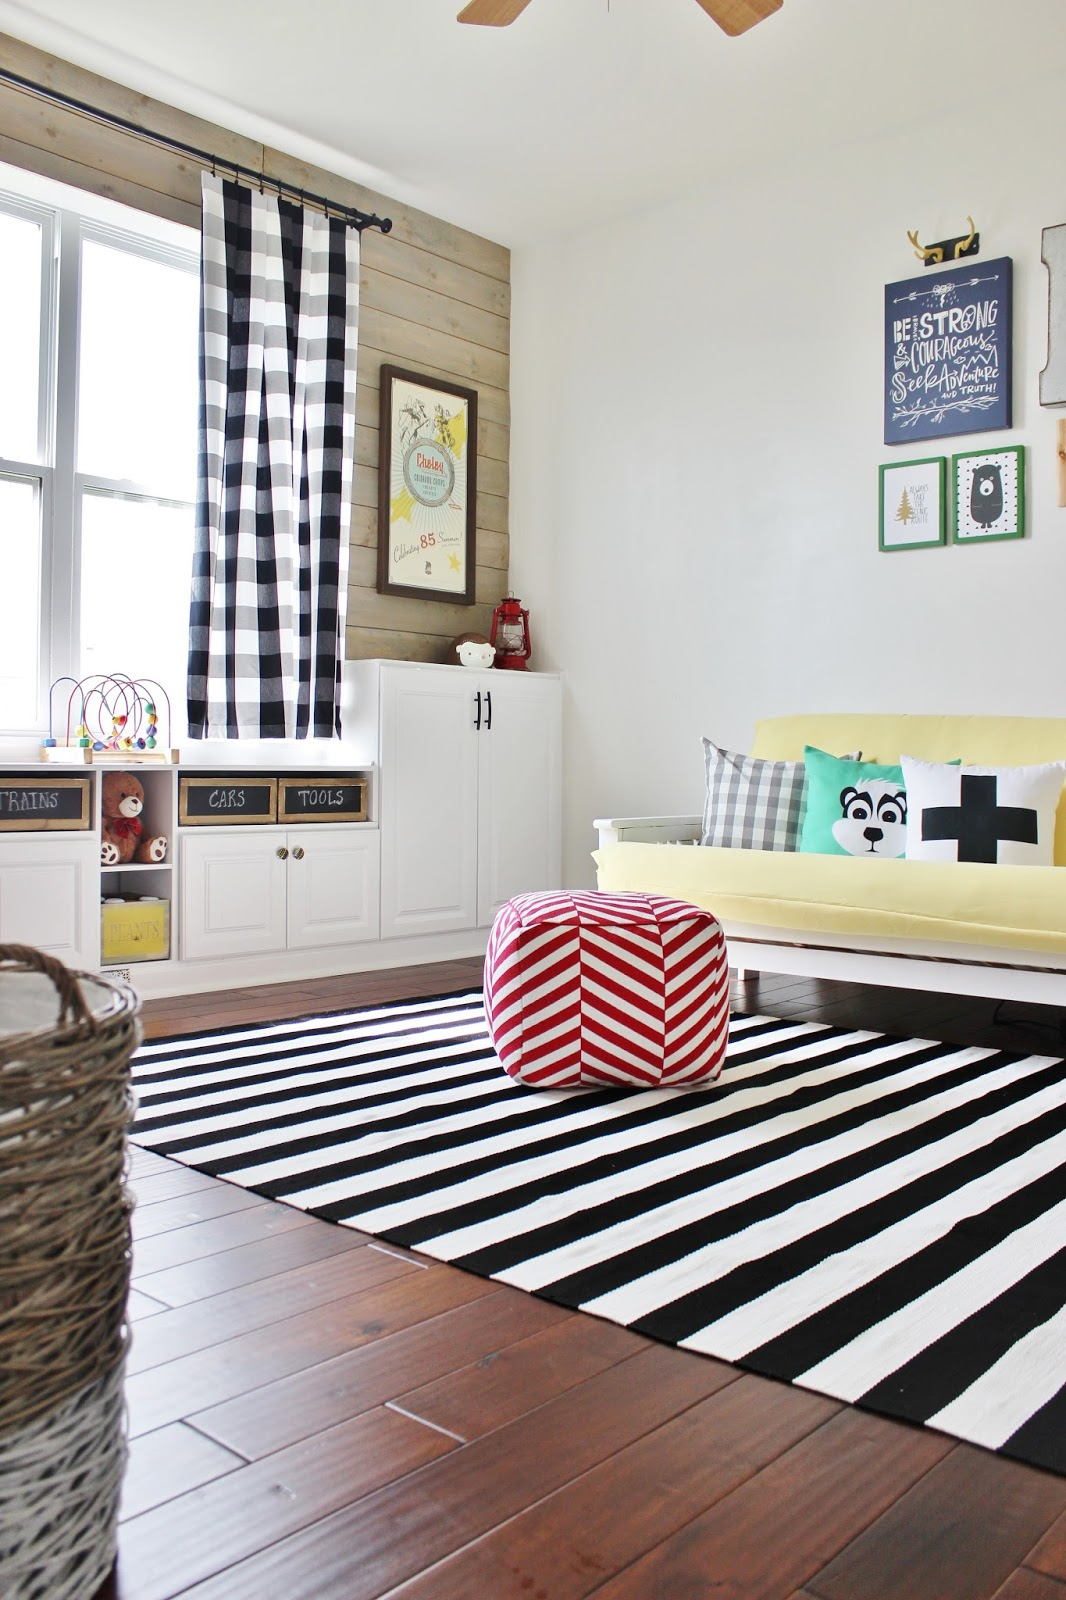 Remodelaholic   Playroom Makeover with Built-In Cabinets for Storage